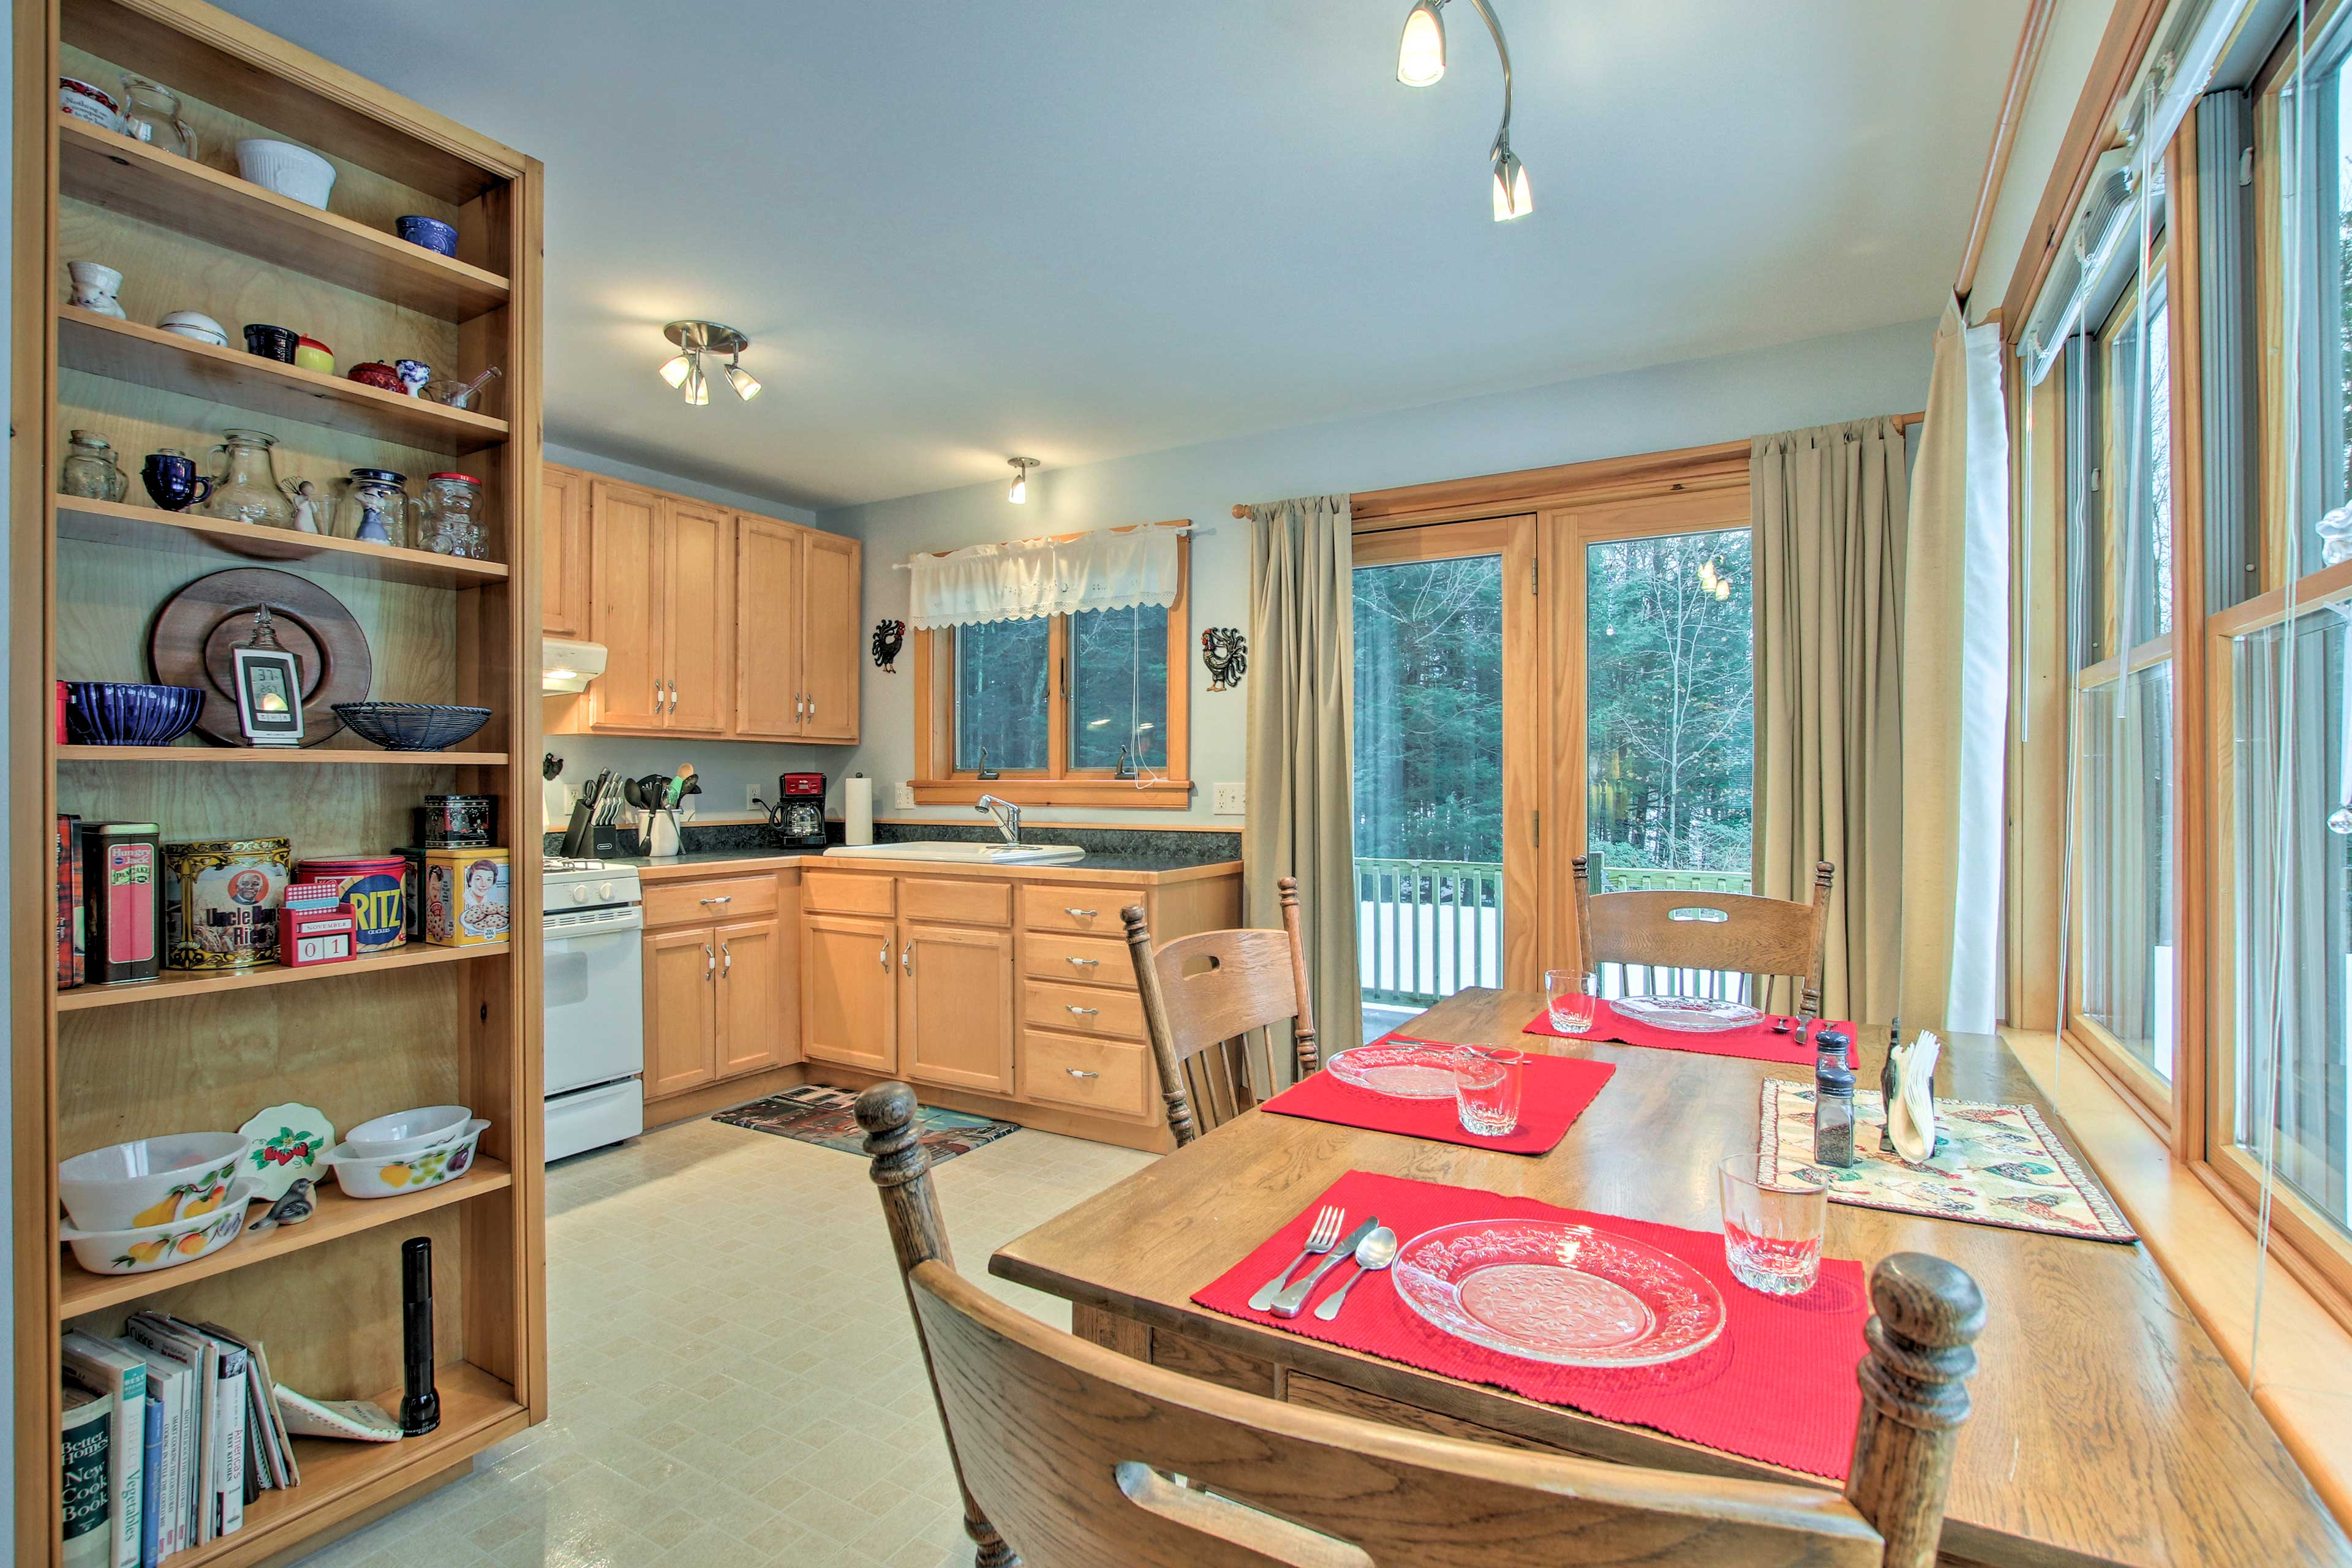 This home comfortably accommodates 6 travelers.